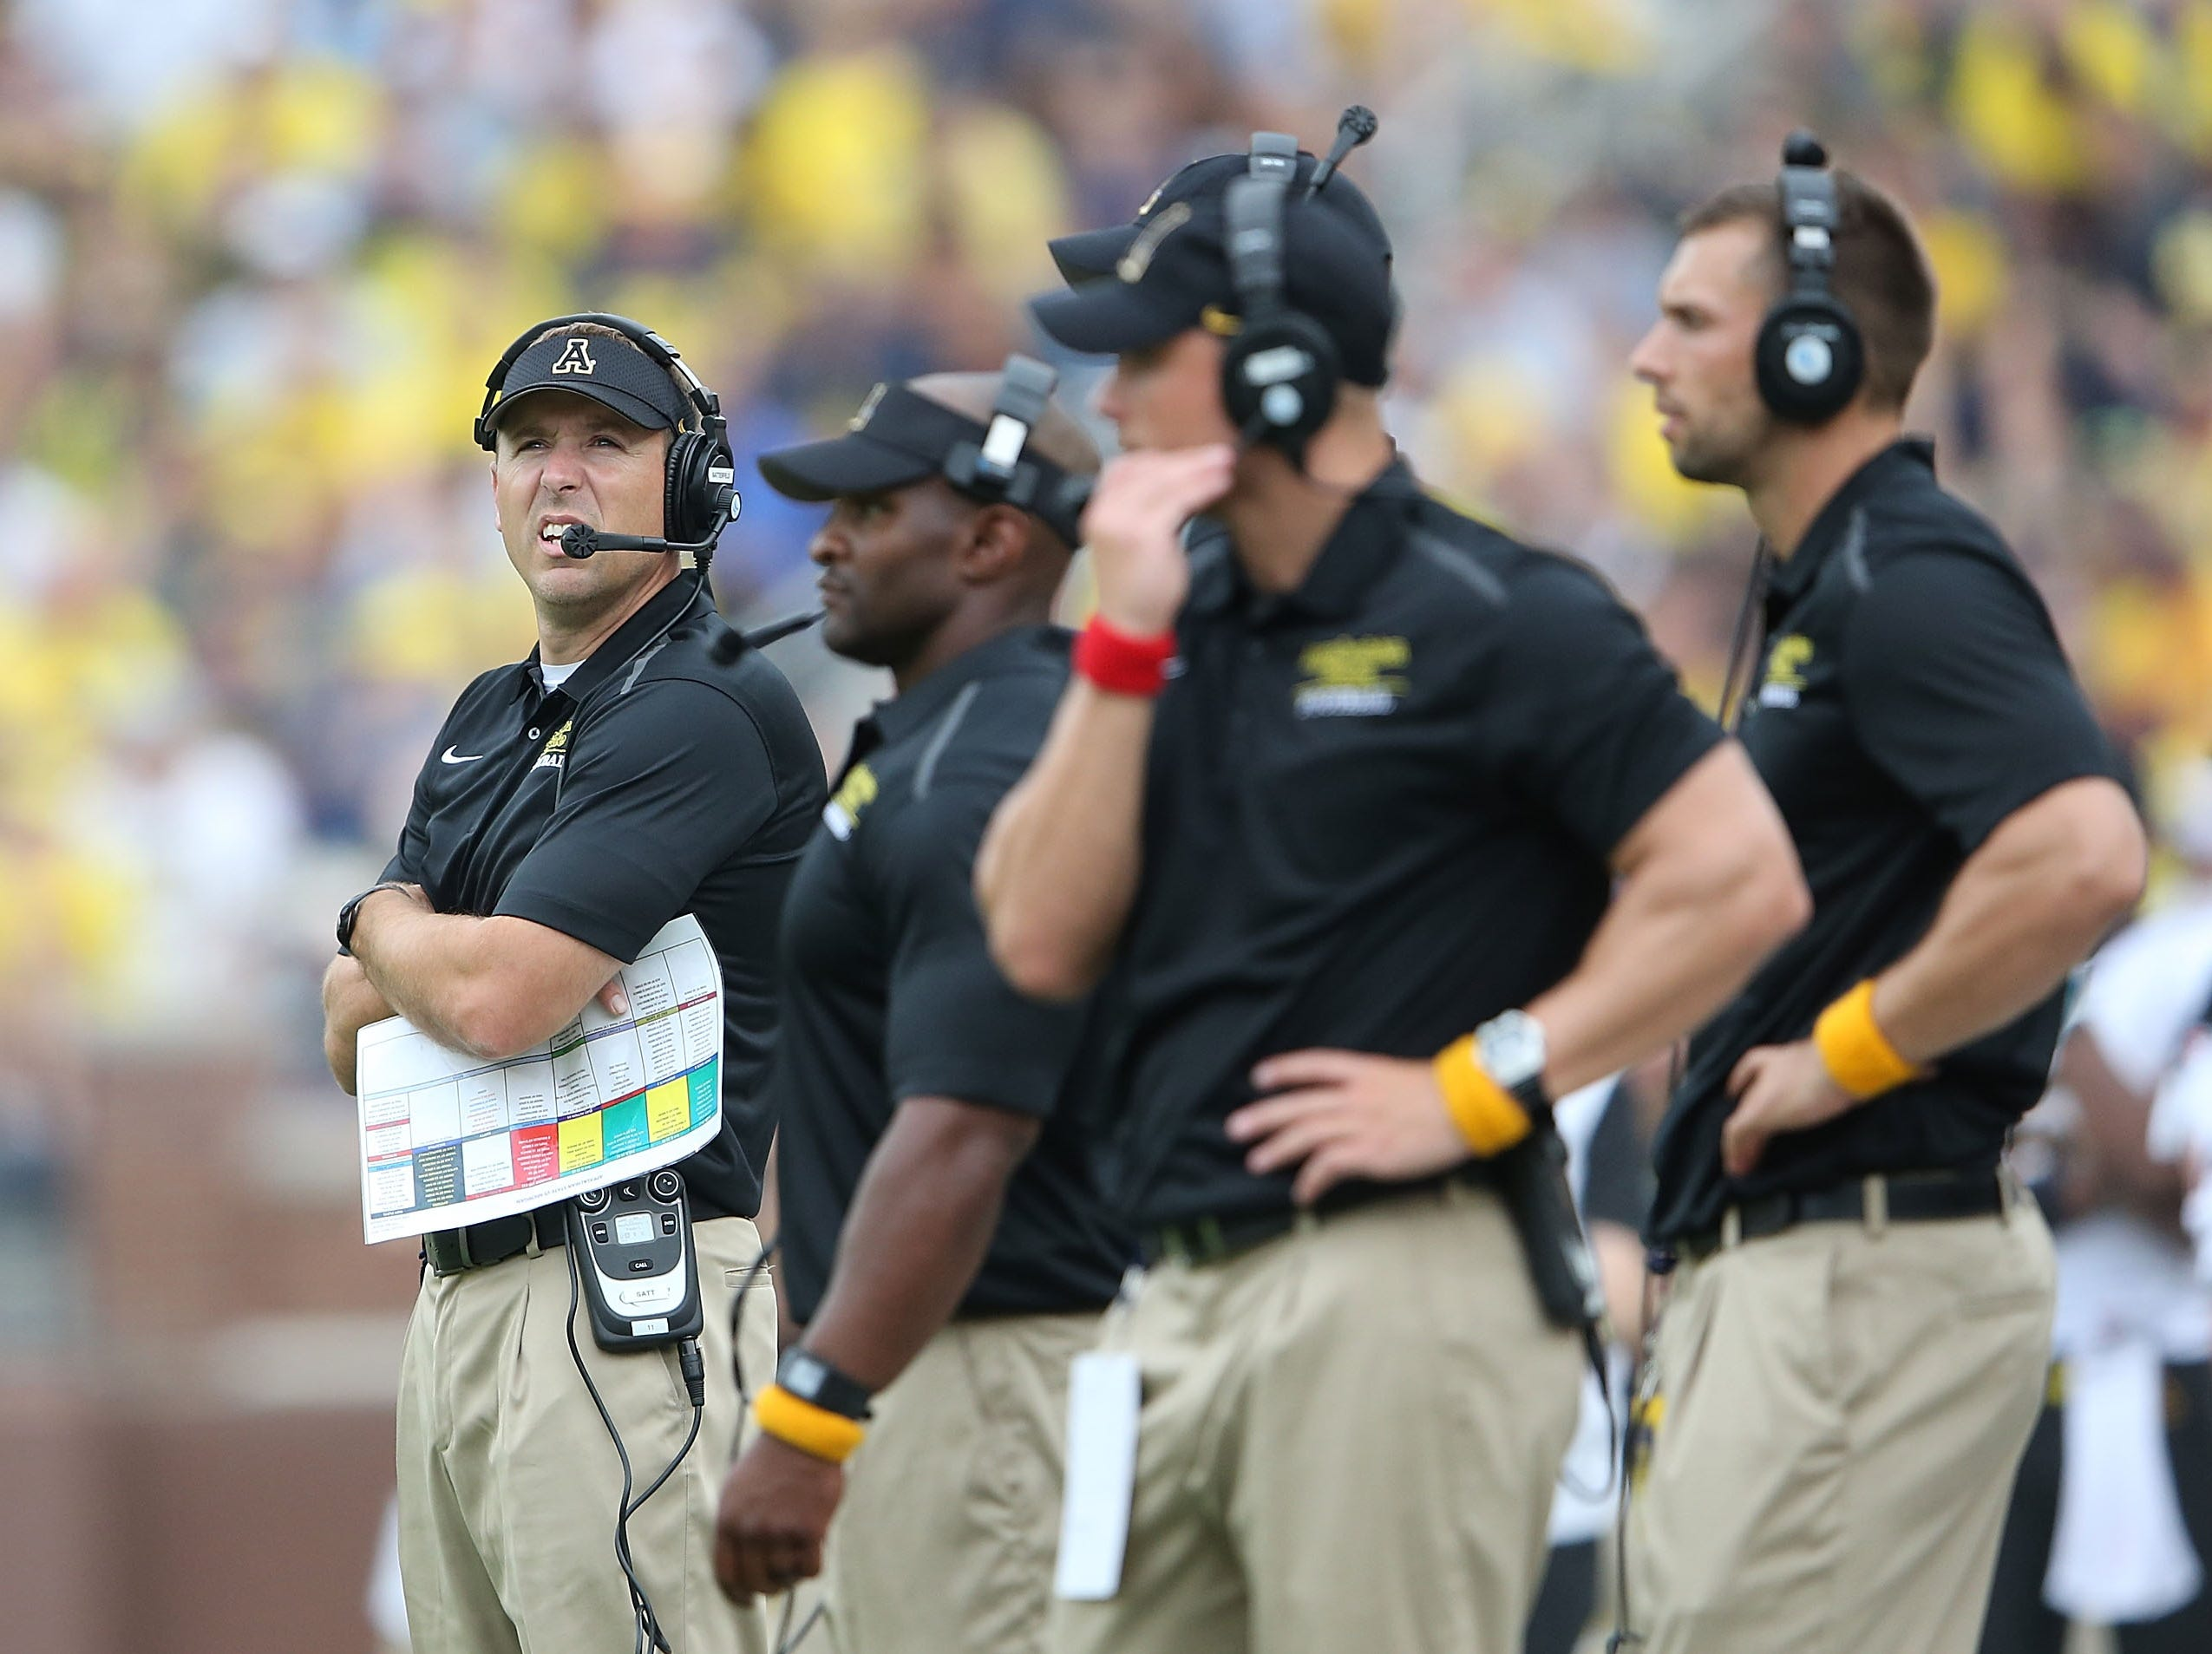 ANN ARBOR, MI - AUGUST 30:  The Appalachian State Mountaineers head football coach Scott Satterfield watches the action during the second half of the game against the Michigan Wolverines on August 30, 2014 in Ann Arbor, Michigan. The Wolverines defeated the Mountaineers 52-14.  (Photo by Leon Halip/Getty Images)